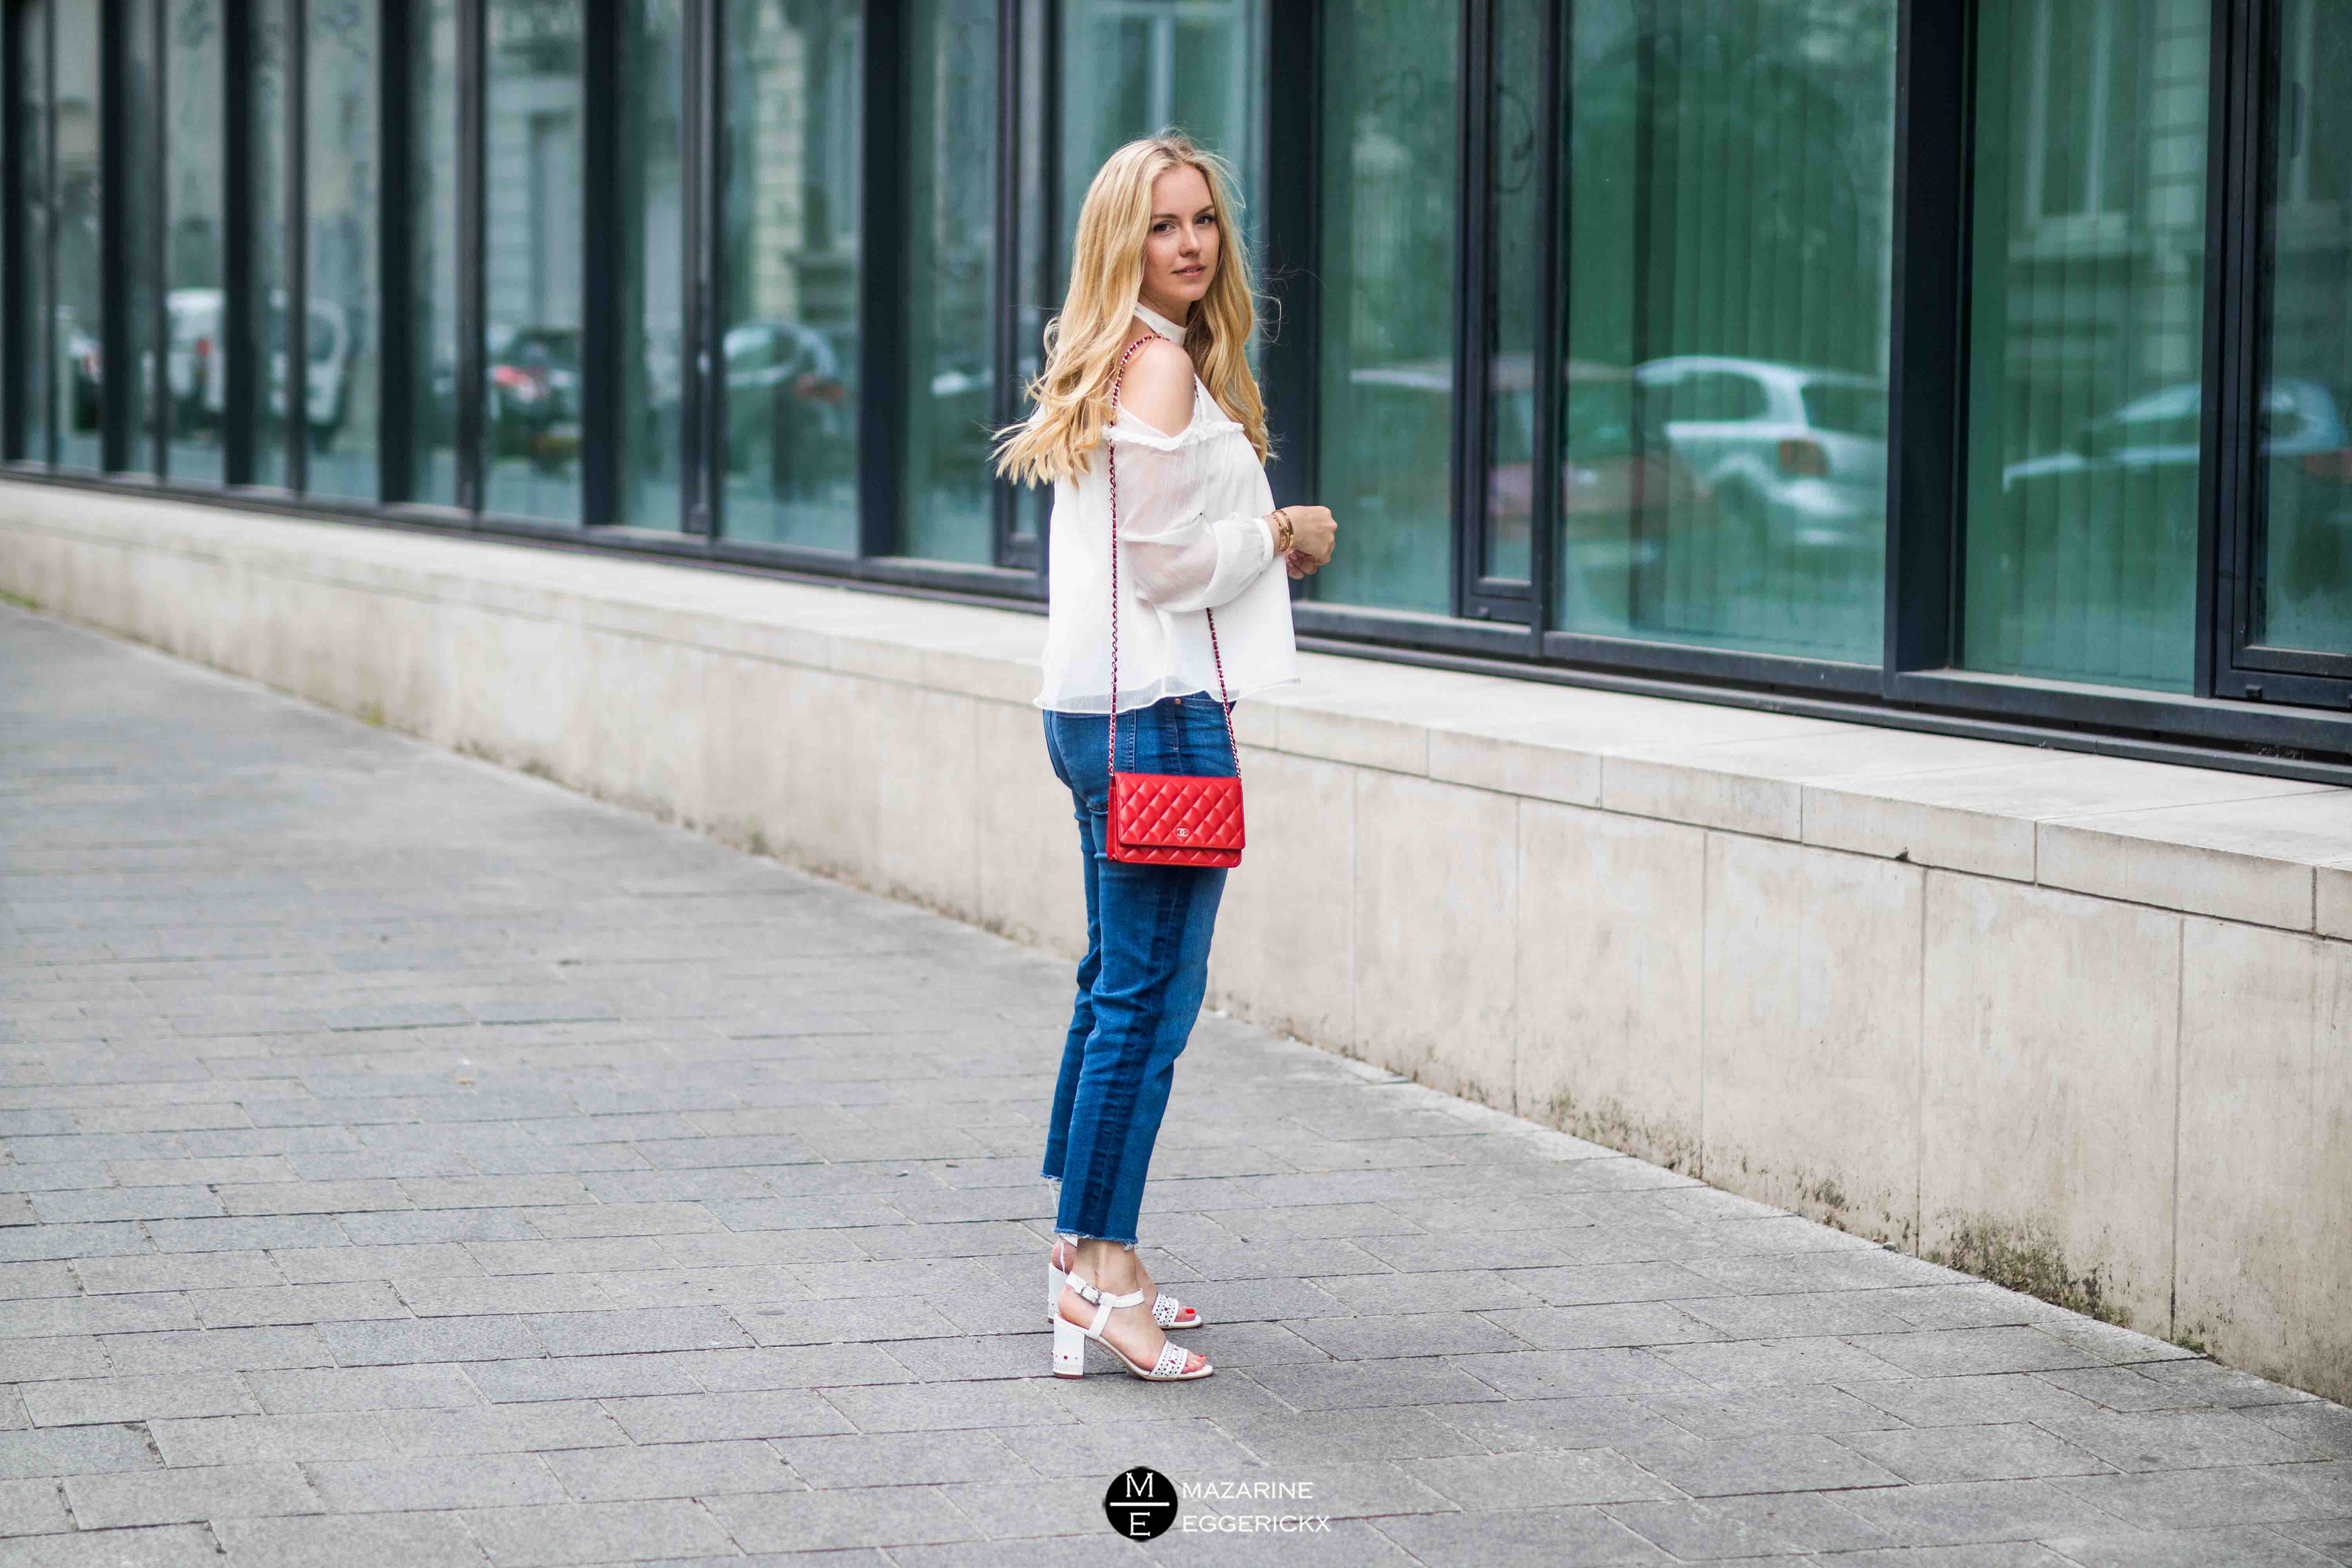 red Chanel wallet on chain & Minelli shoes